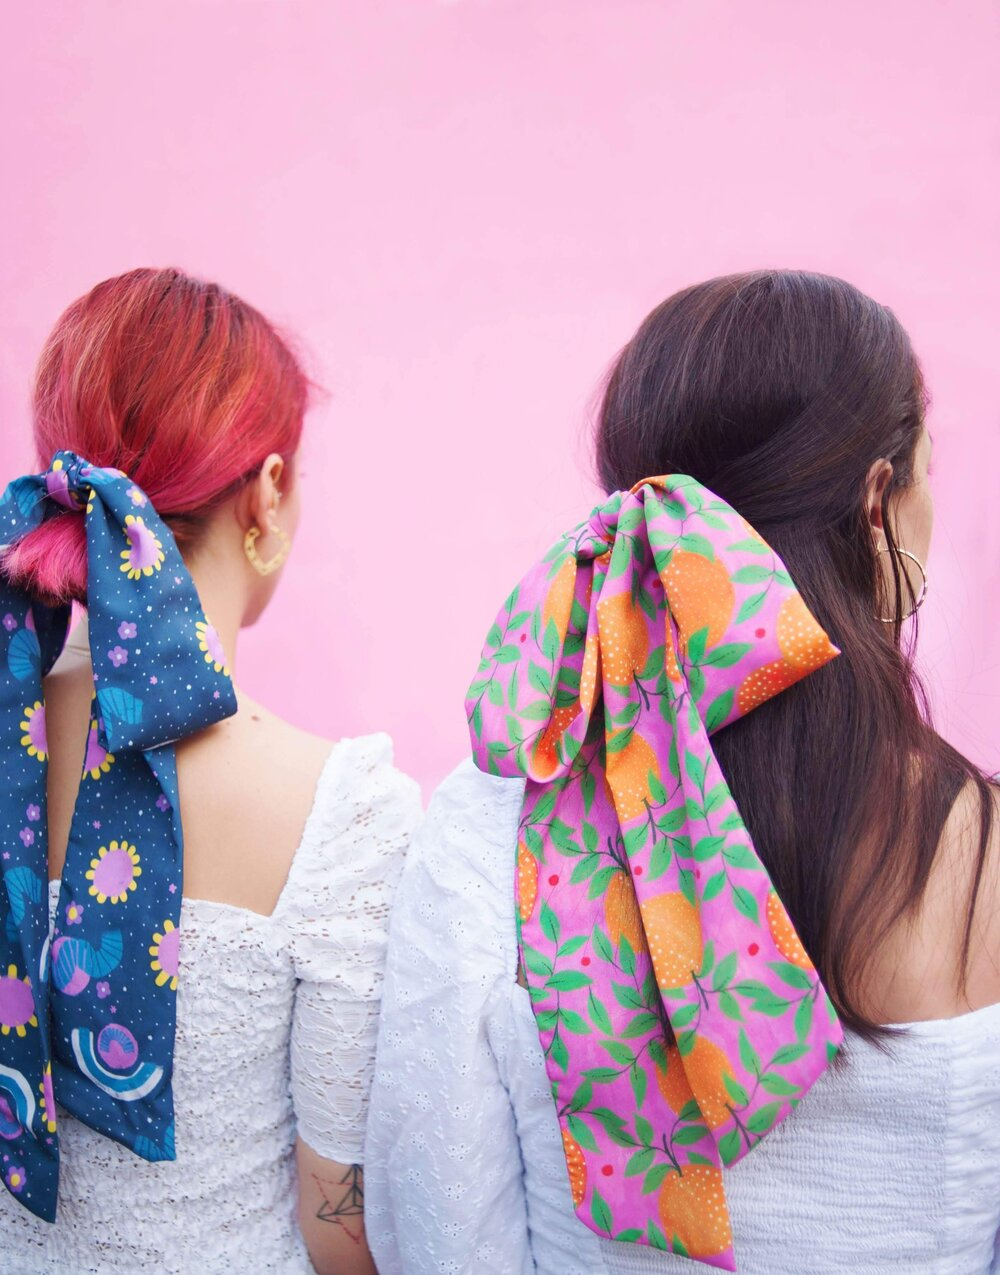 Hair scarves by Cherry and Mint